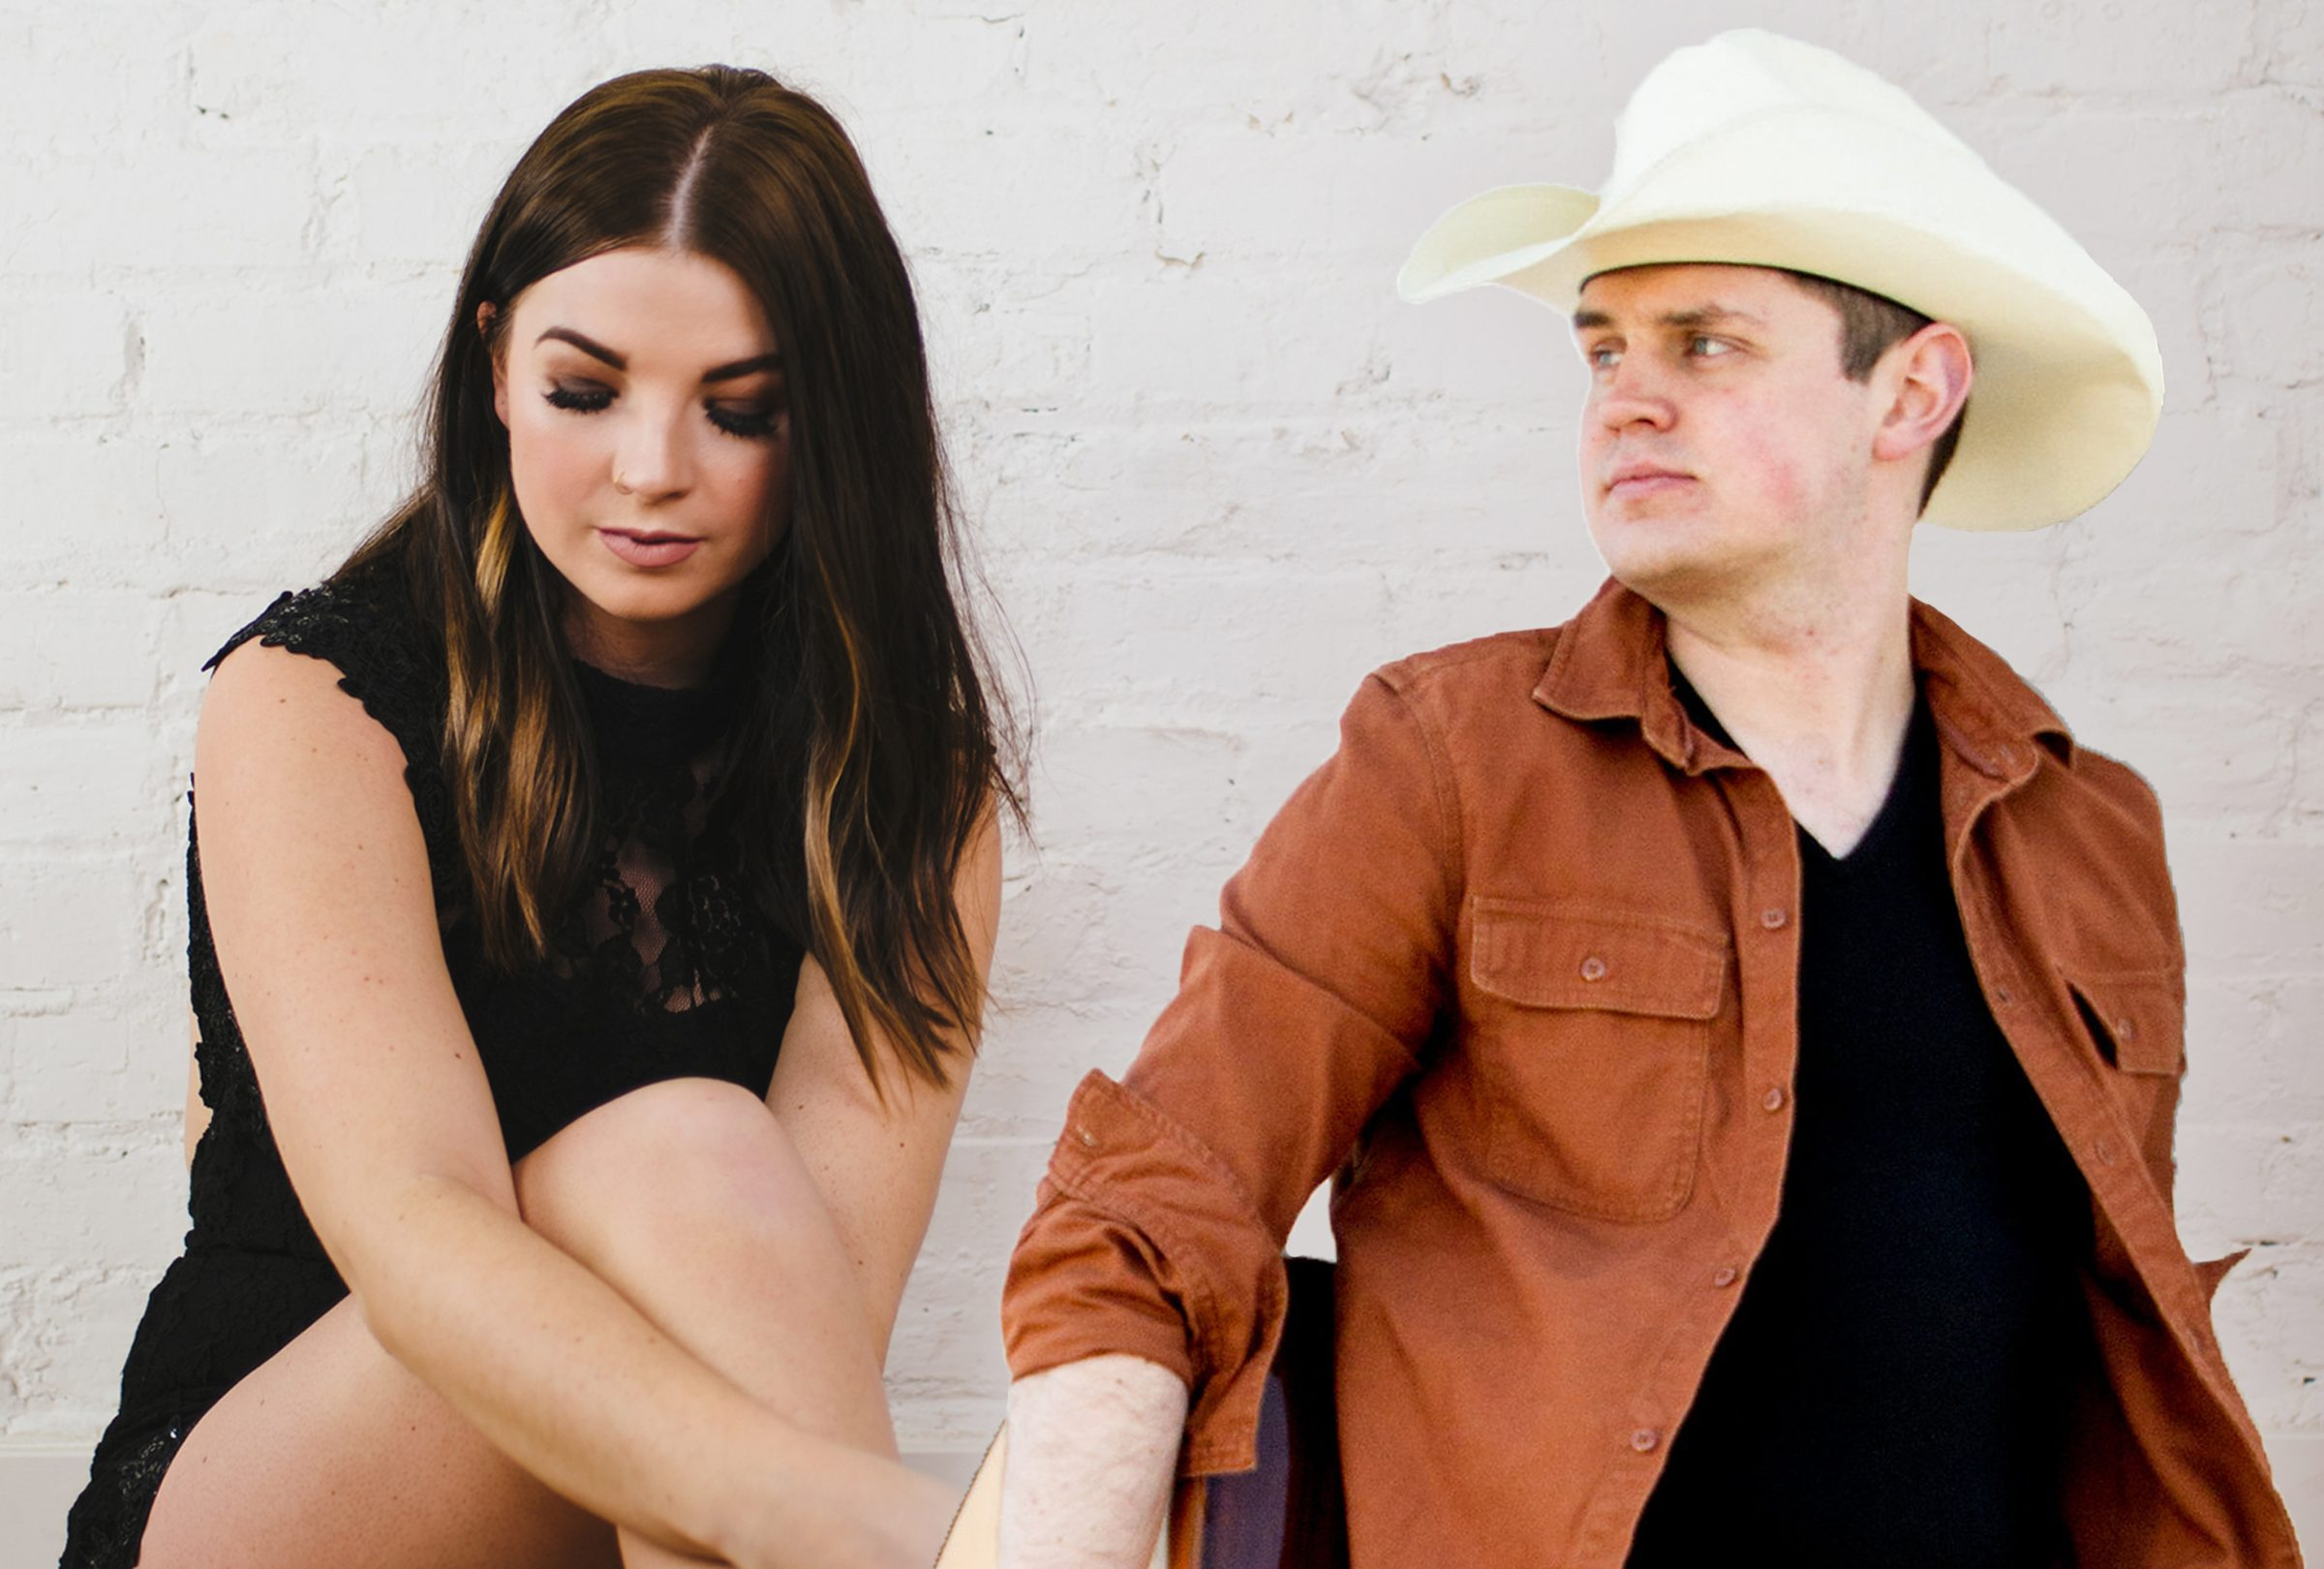 Canada's Country Stars Jess Moskaluke and Ben Klick Team Up to help end MS